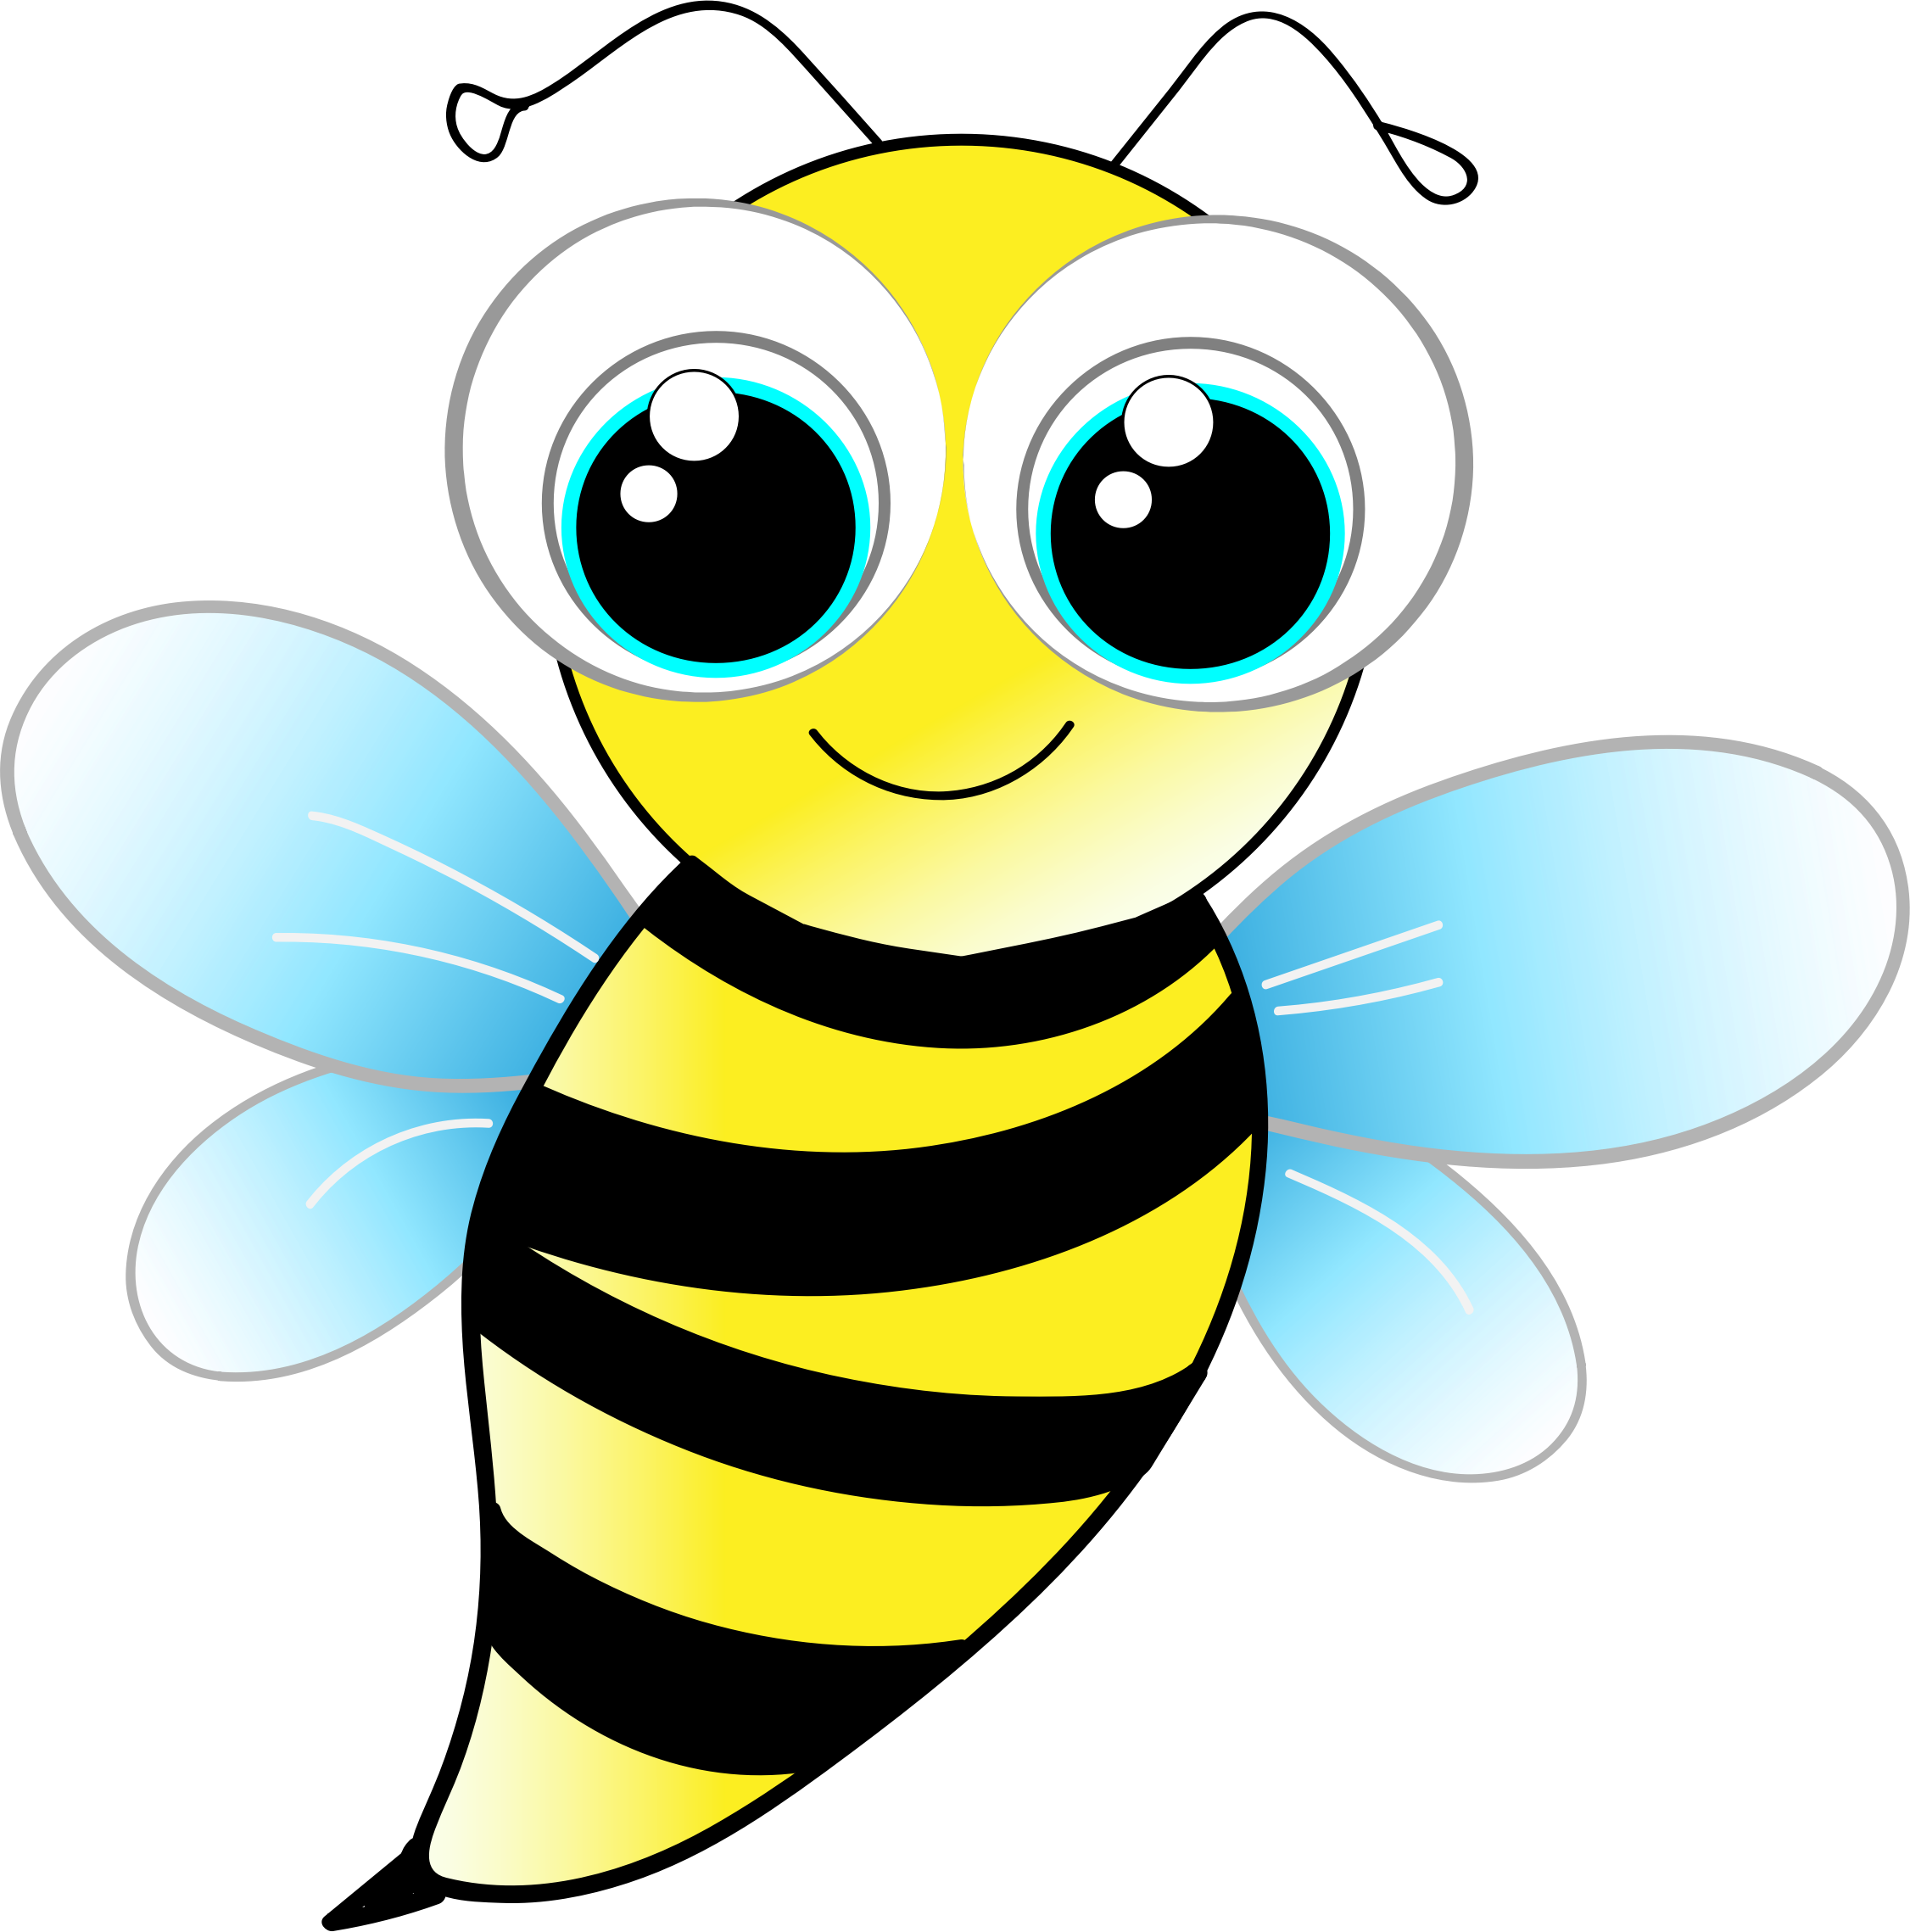 Bee clipart flying. Honey crafty inspiration ideas